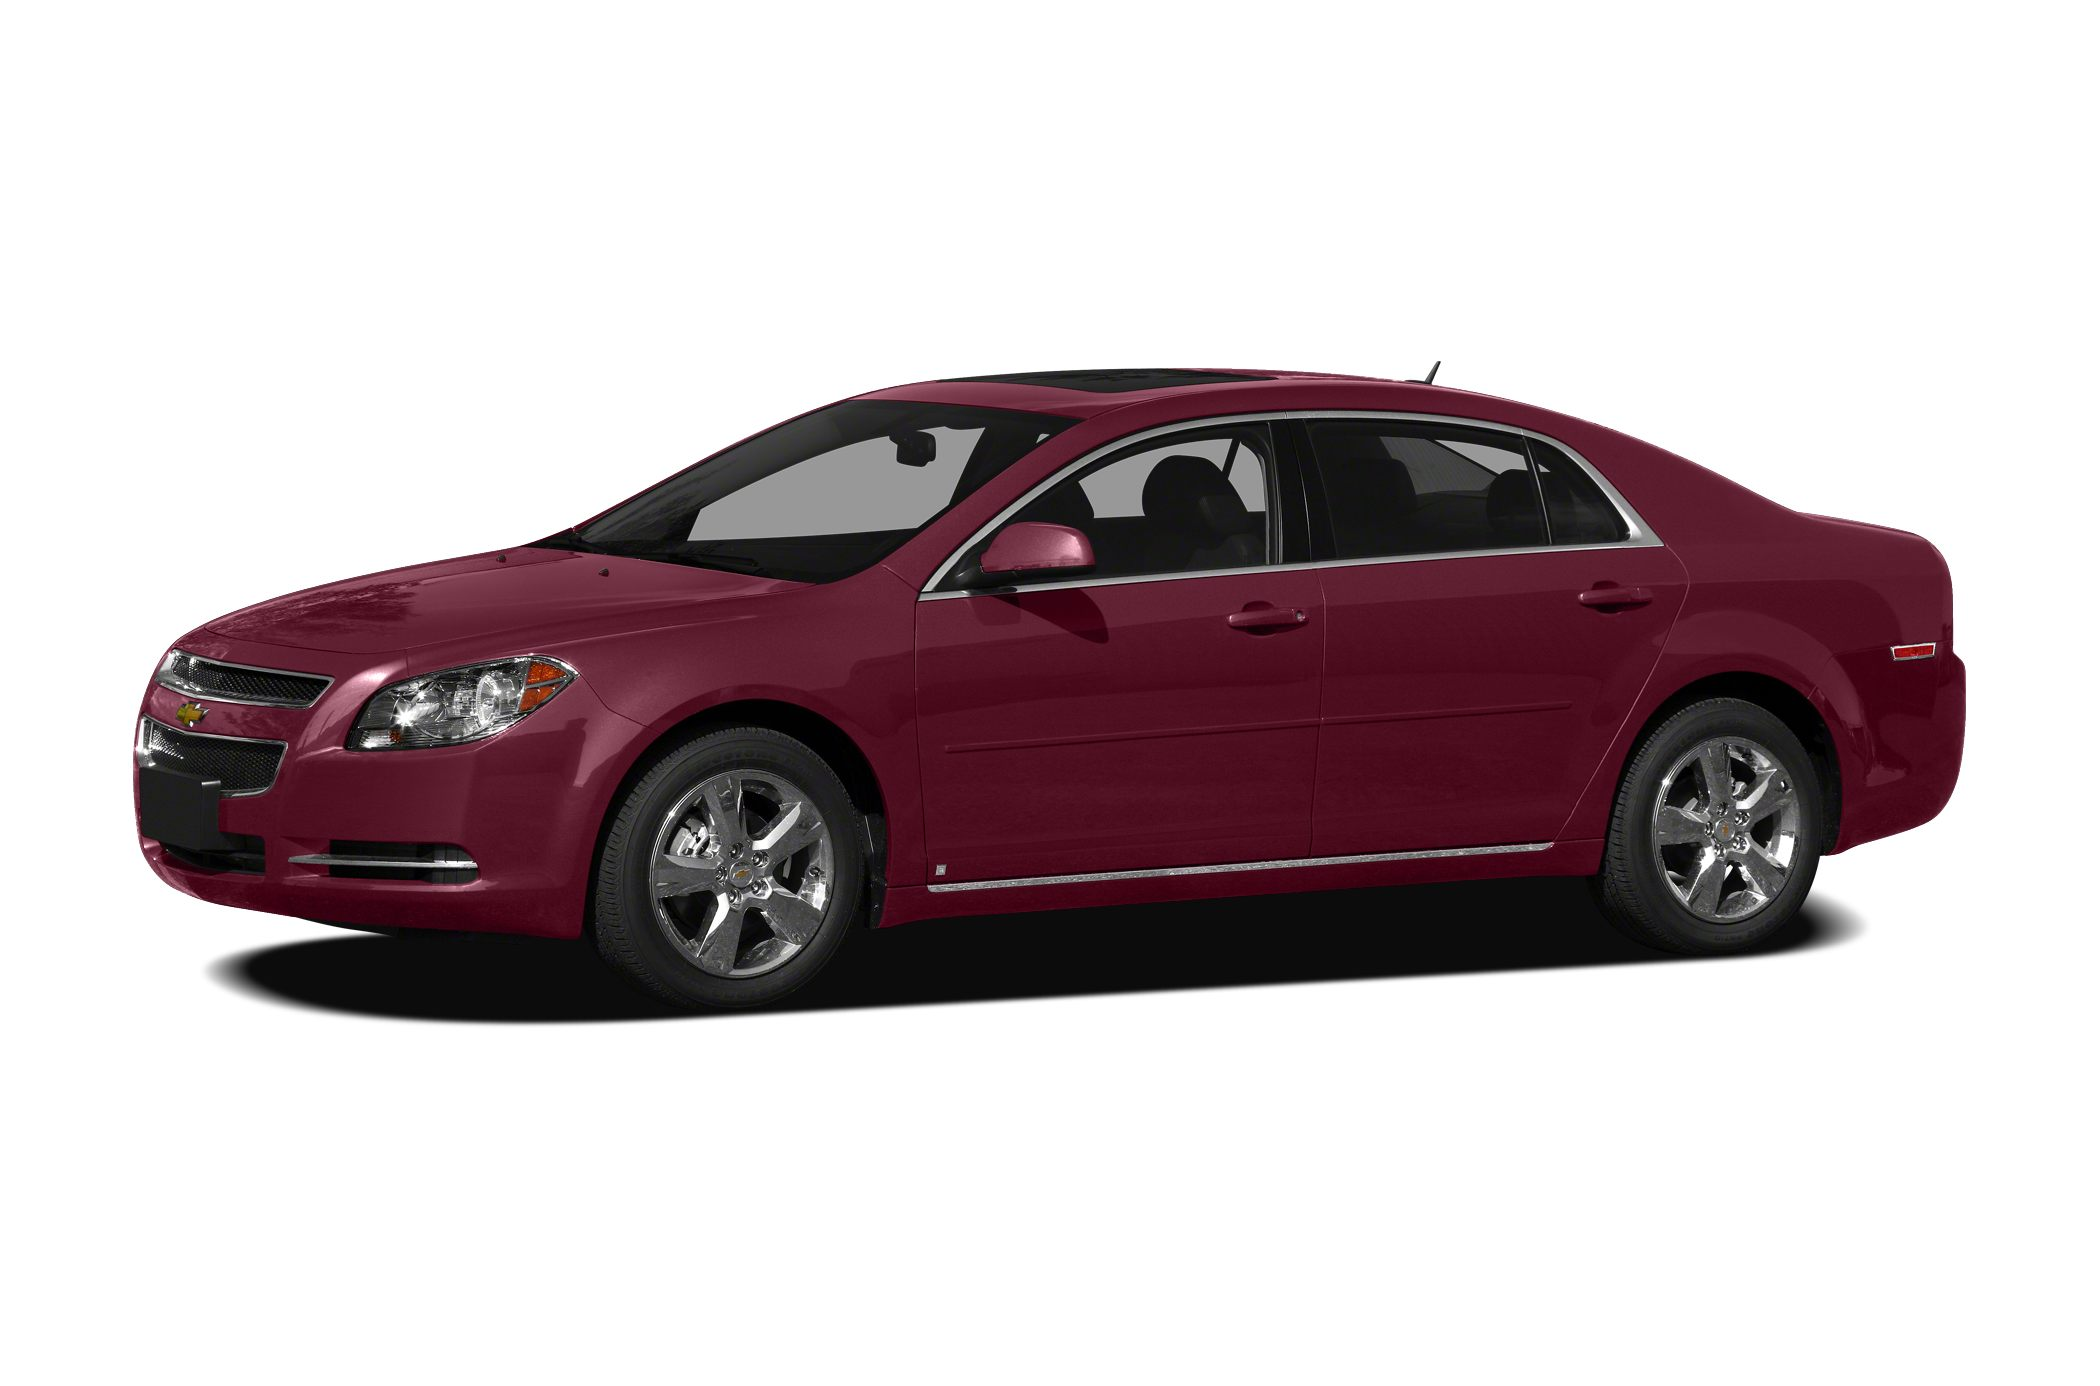 2011 Chevrolet Malibu LS Sedan for sale in Norwich for $11,890 with 22,107 miles